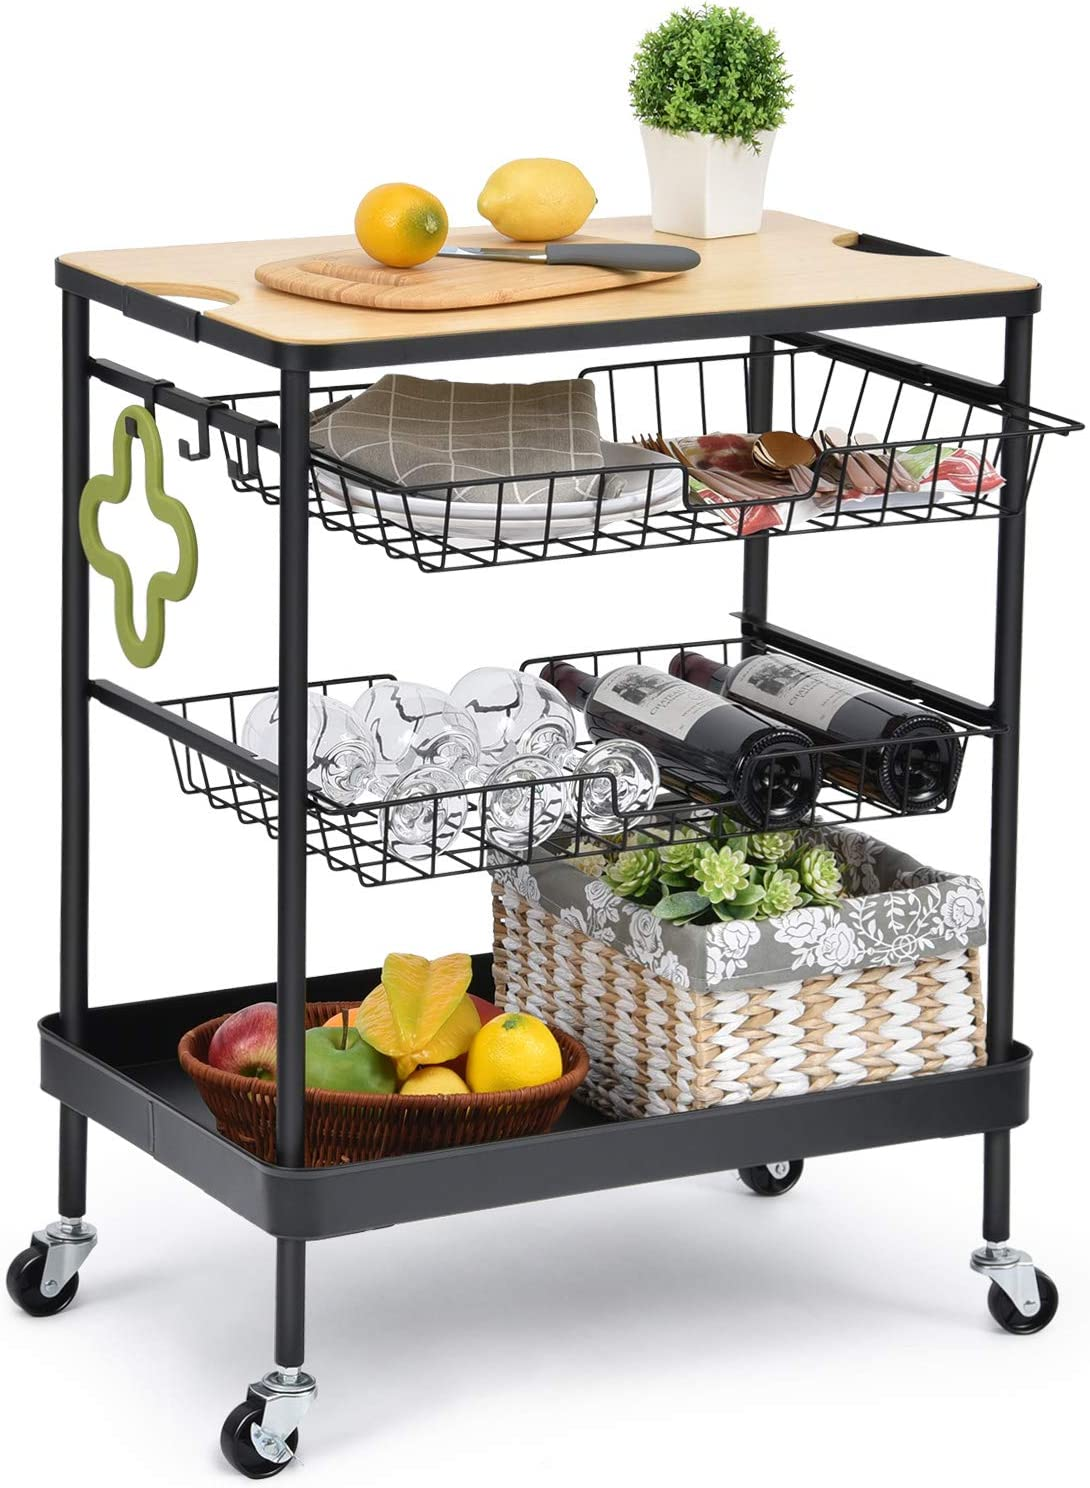 TOOLF Kitchen Island Serving Cart with Utility Wood Tabletop, 4-Tier Rolling Storage Cart with 2 Basket Drawers, Universal Lockable Casters for Home, Dining Room, Office, Restaurant, Hotel